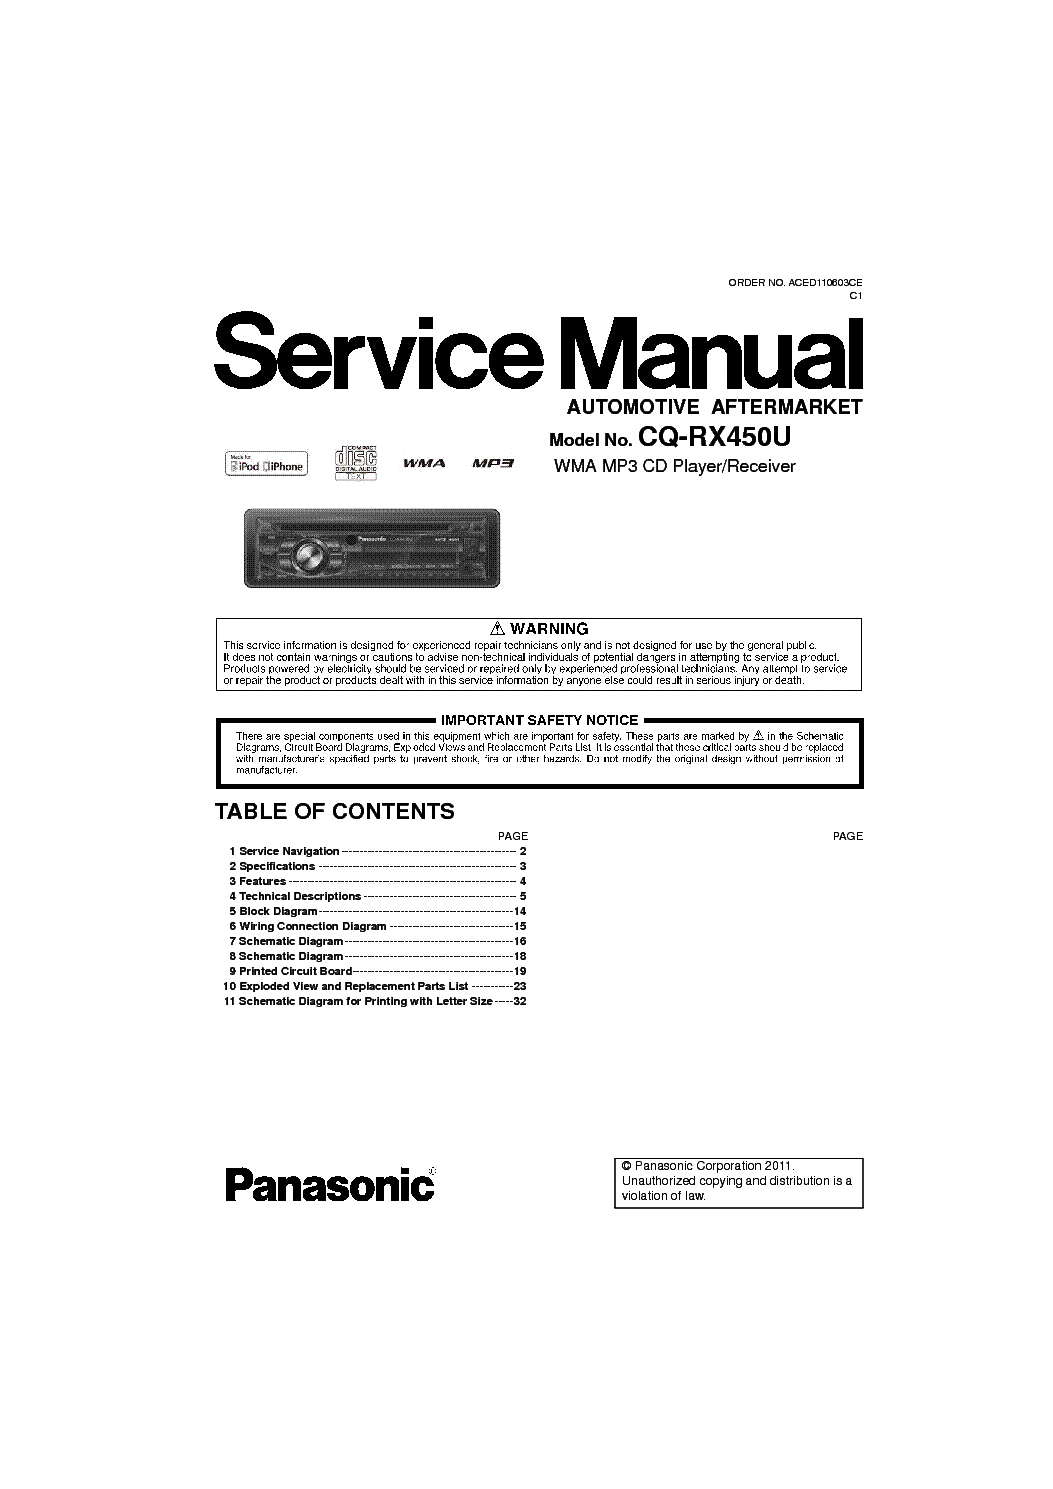 panasonic_cq rx450u.pdf_1 panasonic cq rx450u service manual download, schematics, eeprom panasonic wiring diagram at honlapkeszites.co